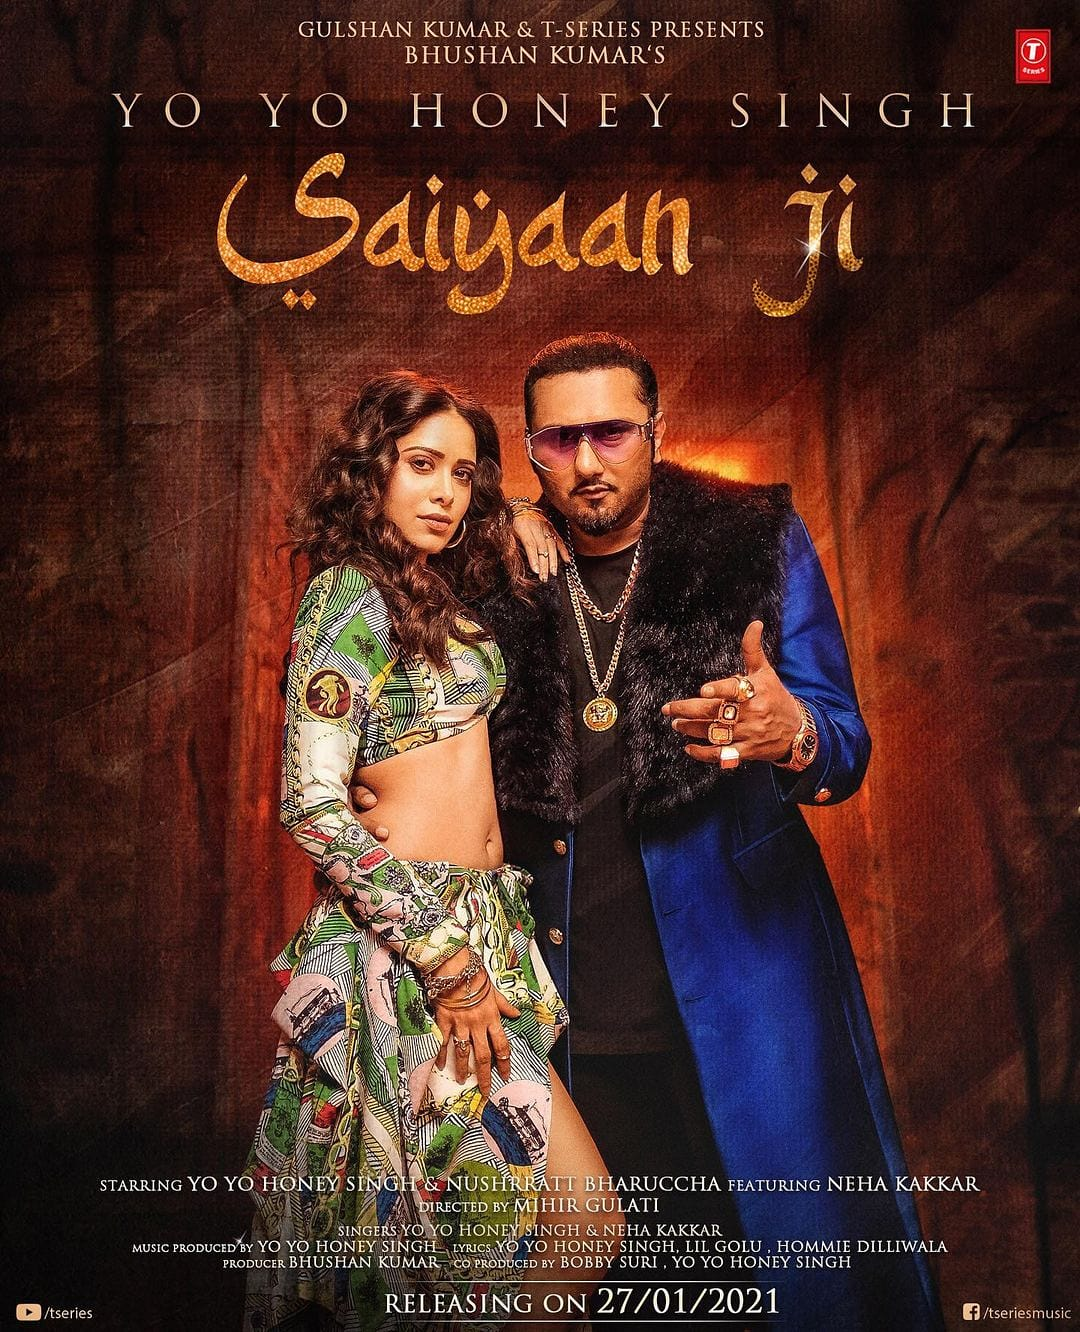 Saiyaan Ji By Yo Yo Honey Singh 2021 Hindi Official Music Video 1080p HDRip Download